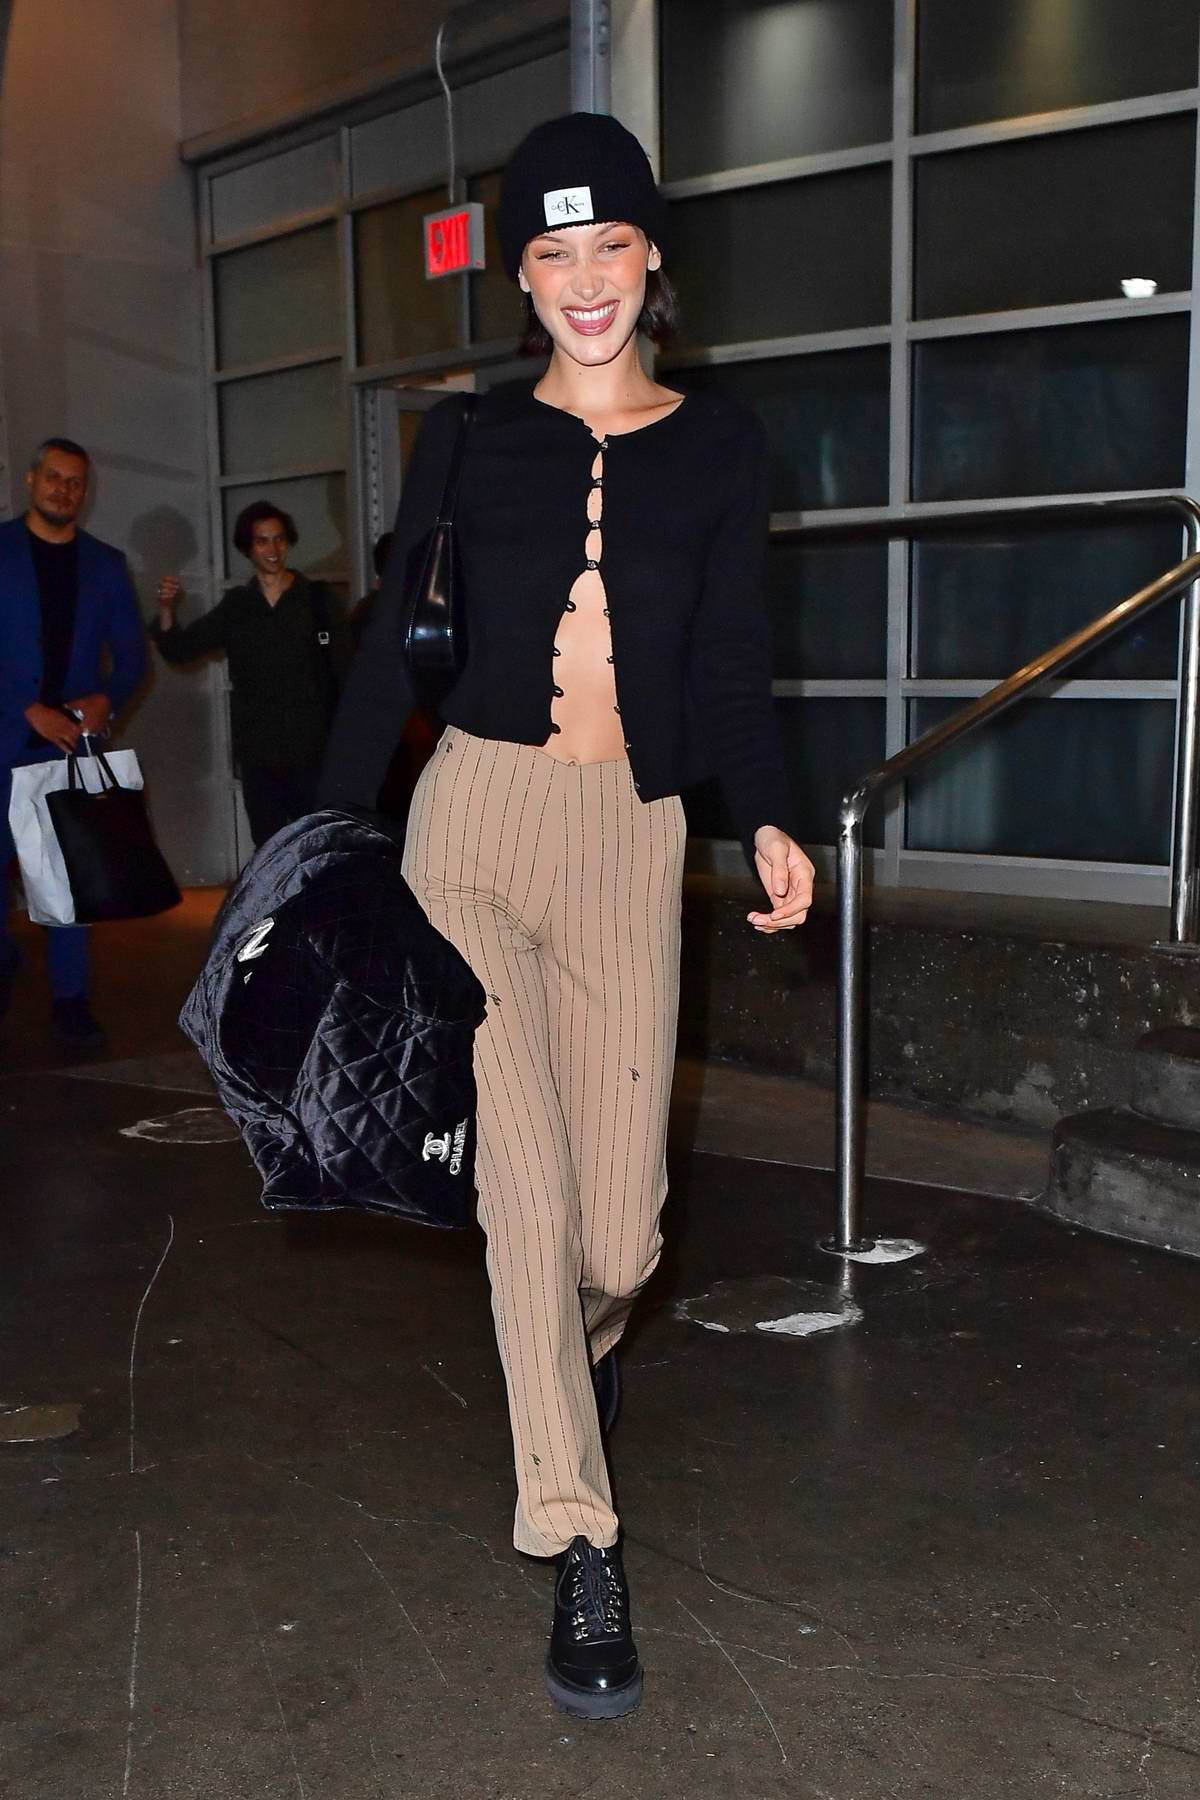 Bella Hadid smiles for the camera as she leaves the Pier59 Studio in New York City